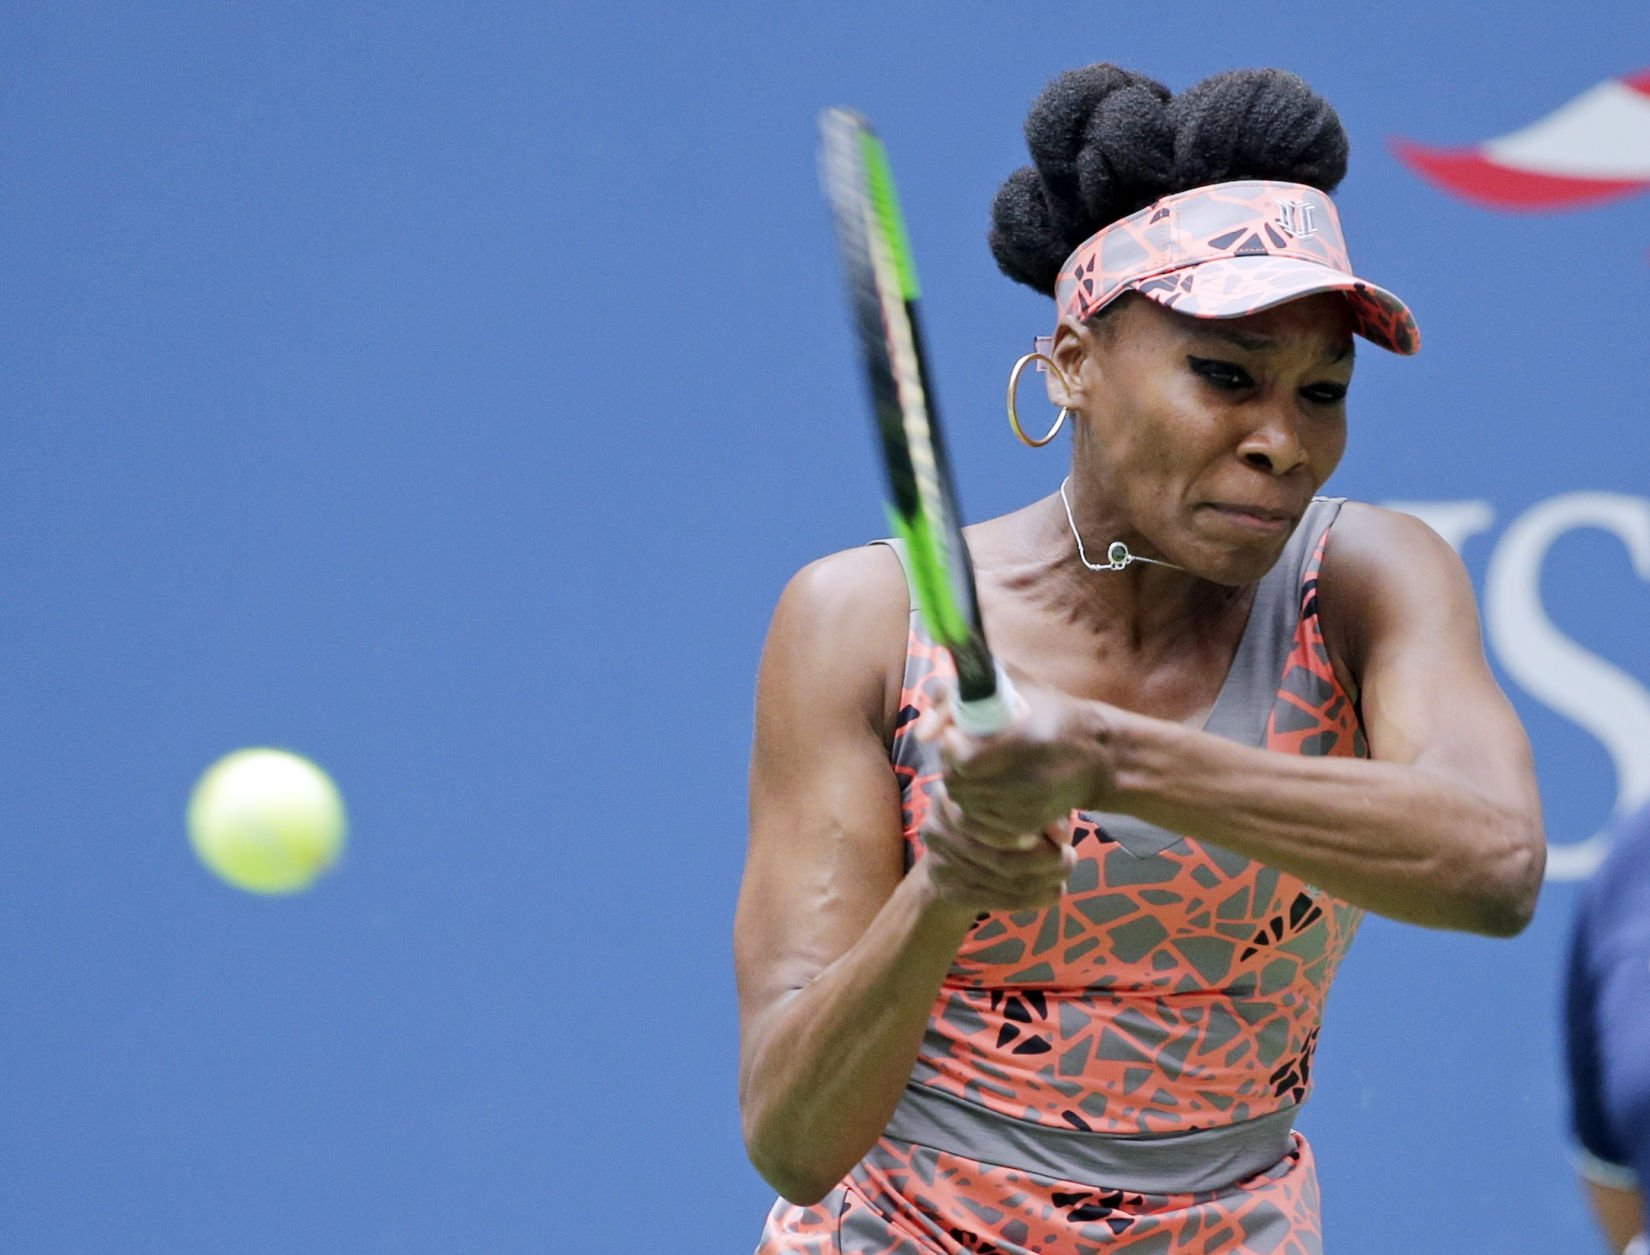 Venus wins in straight sets to advance at Open